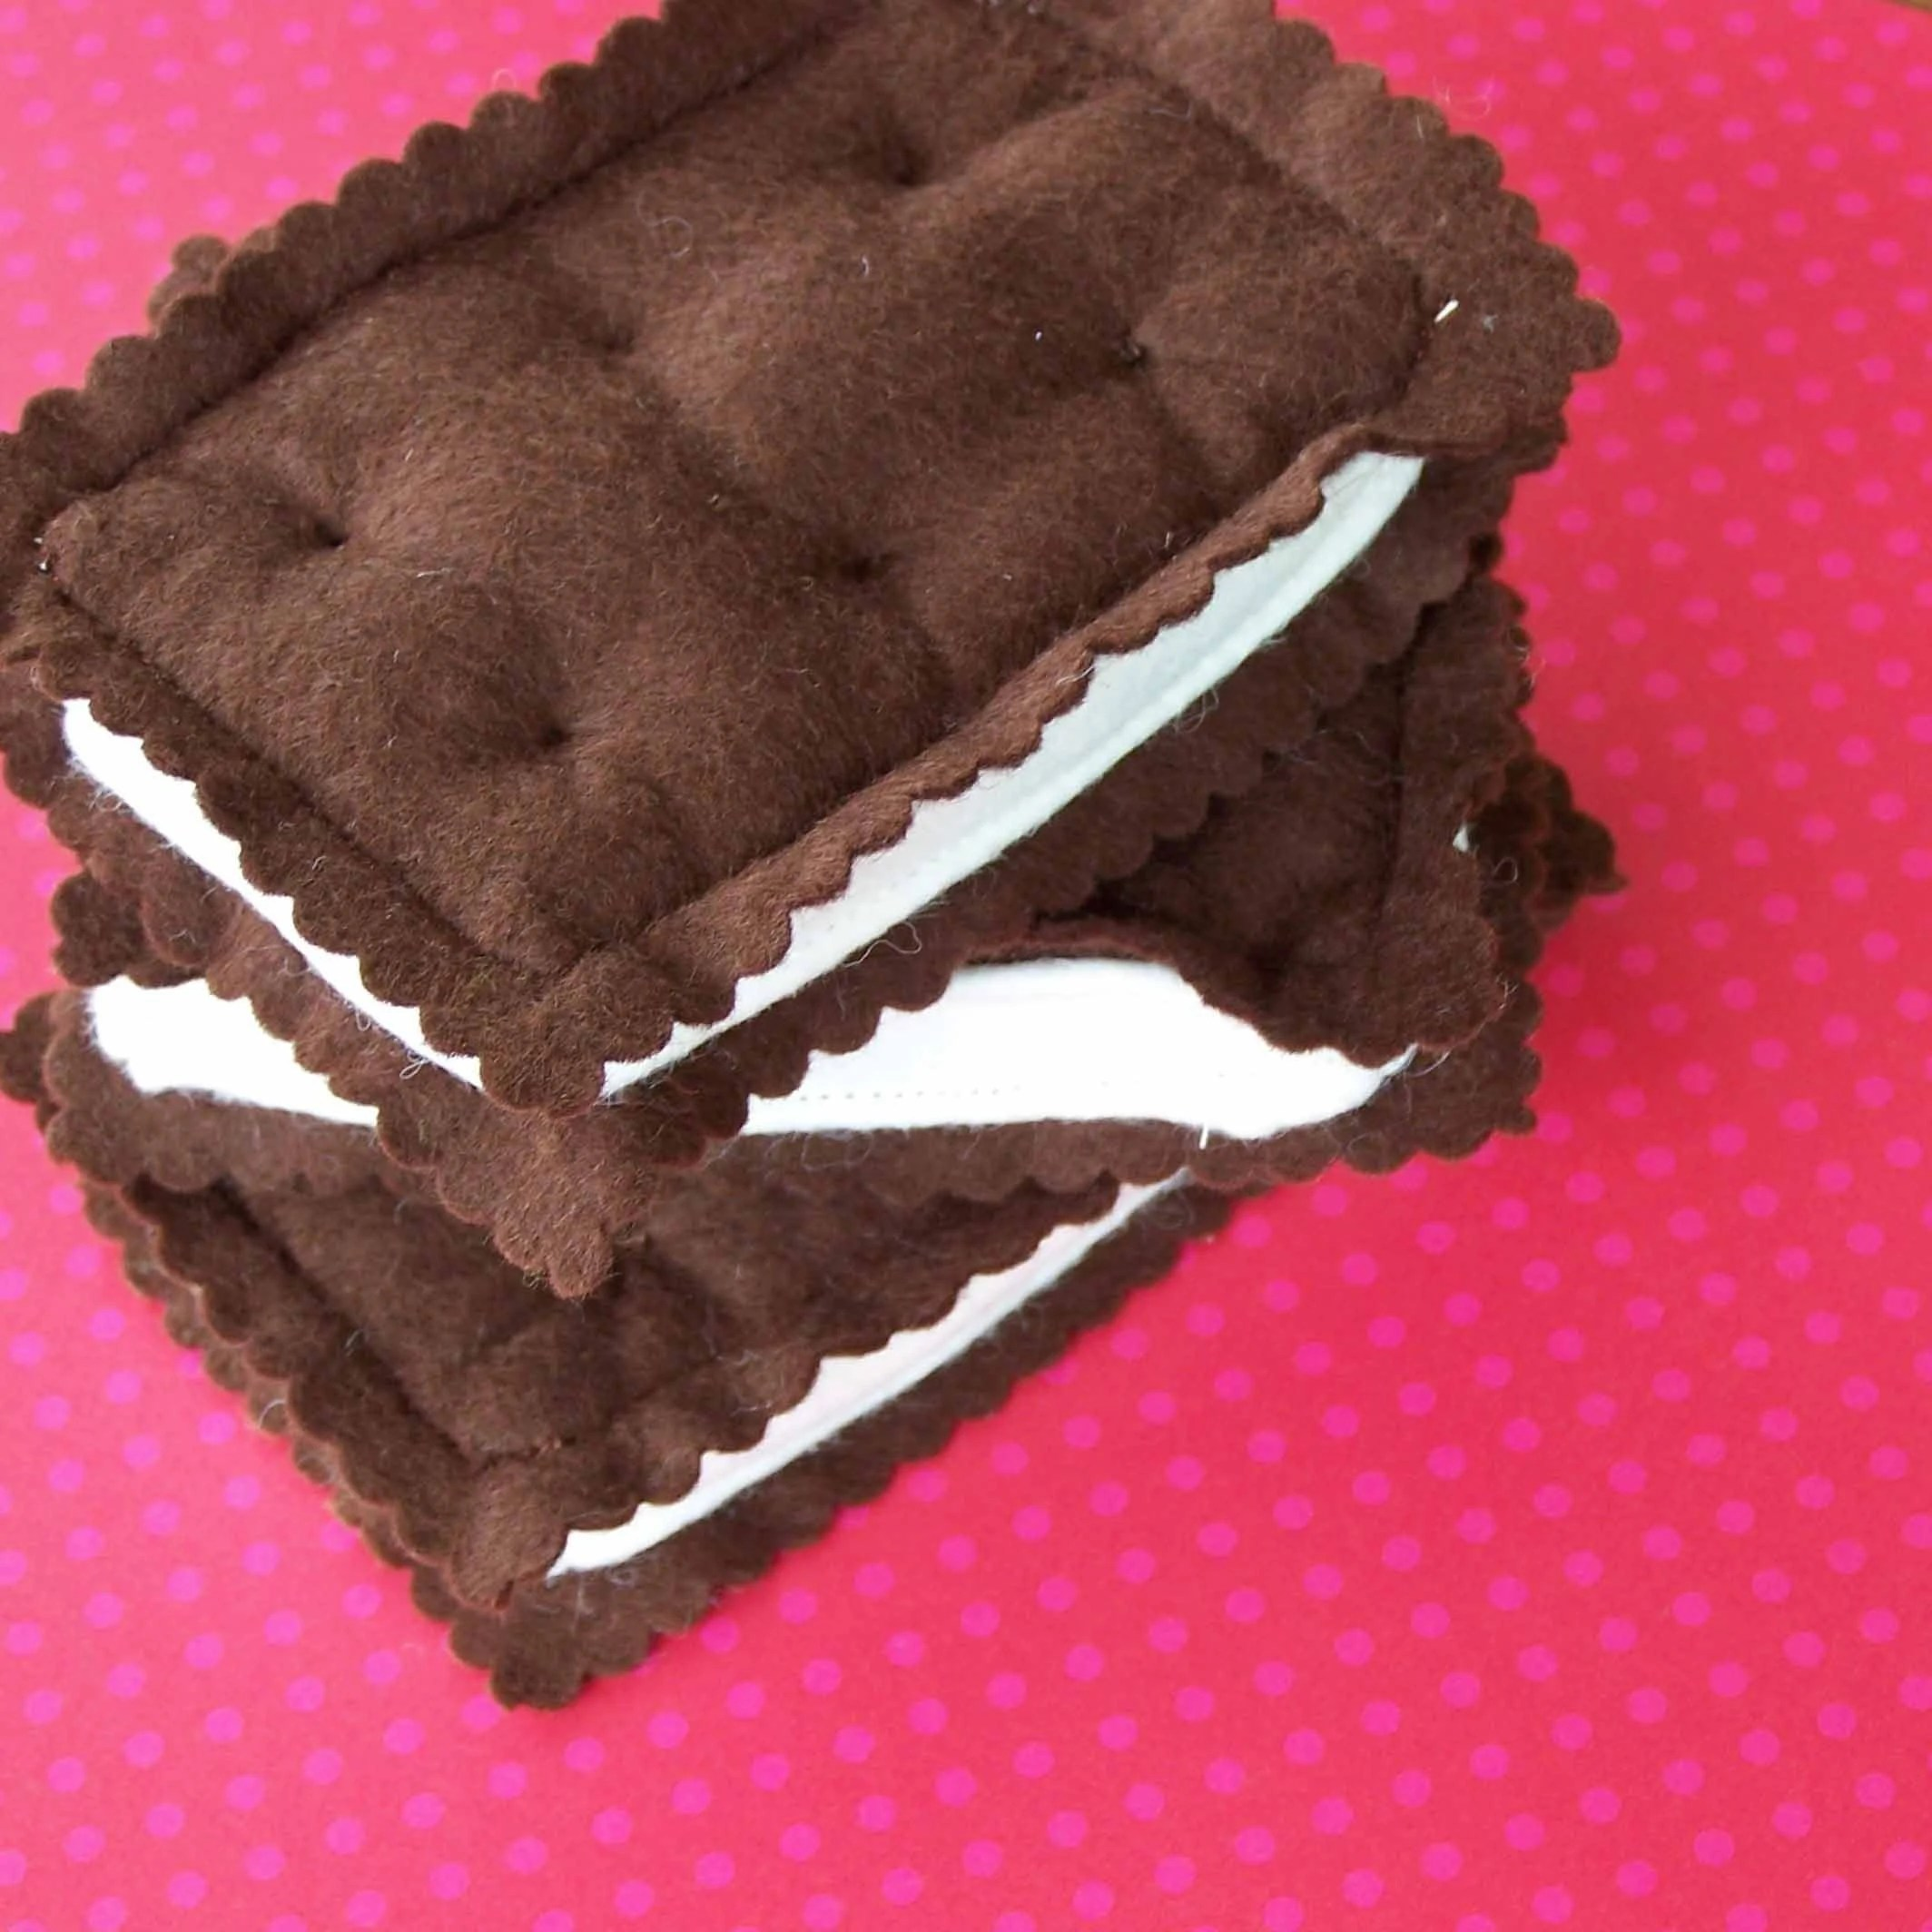 Felt Food Ice Cream Sandwich